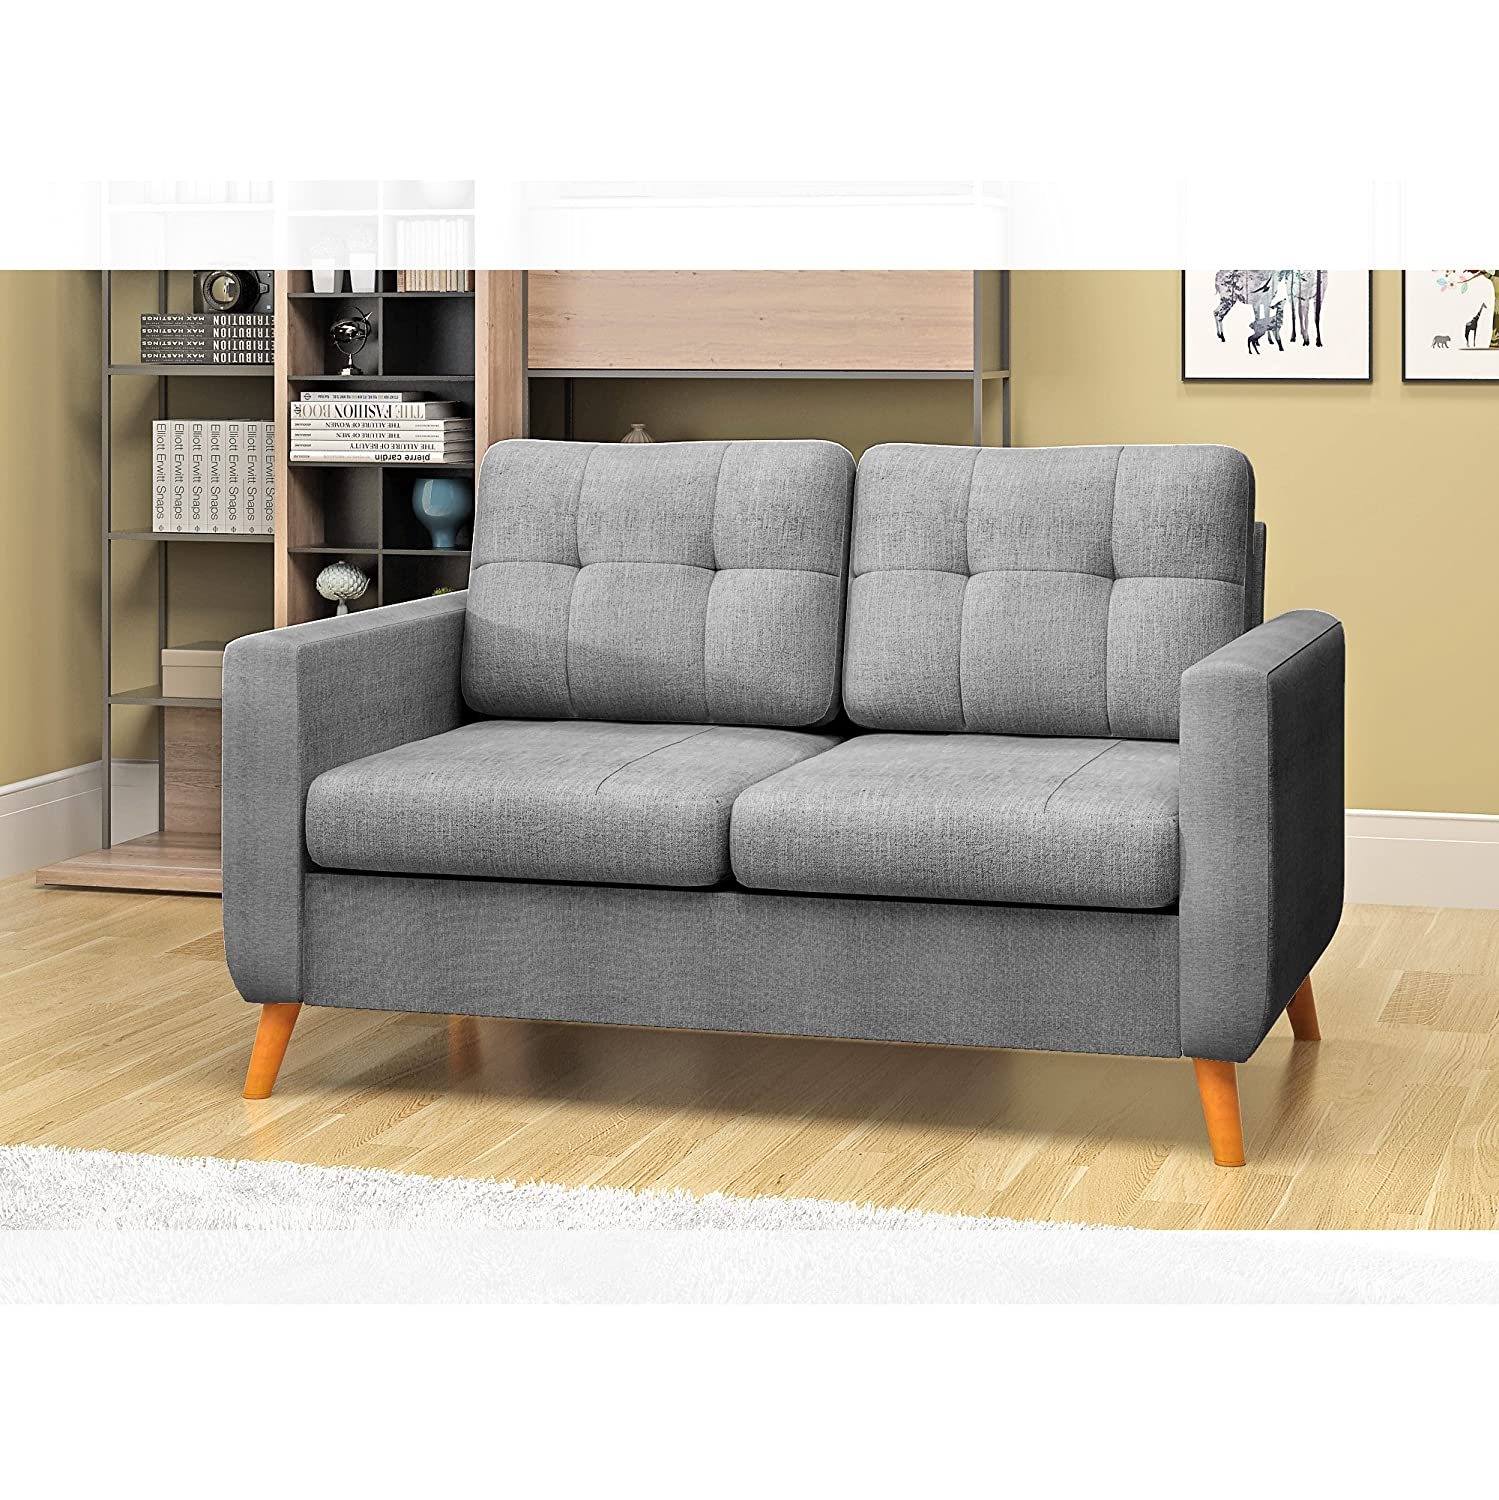 Pleasant Feifeiyo 3 Seater Sofa And 2 Seater Fabric Grey Sofa Settee Couch Andrewgaddart Wooden Chair Designs For Living Room Andrewgaddartcom